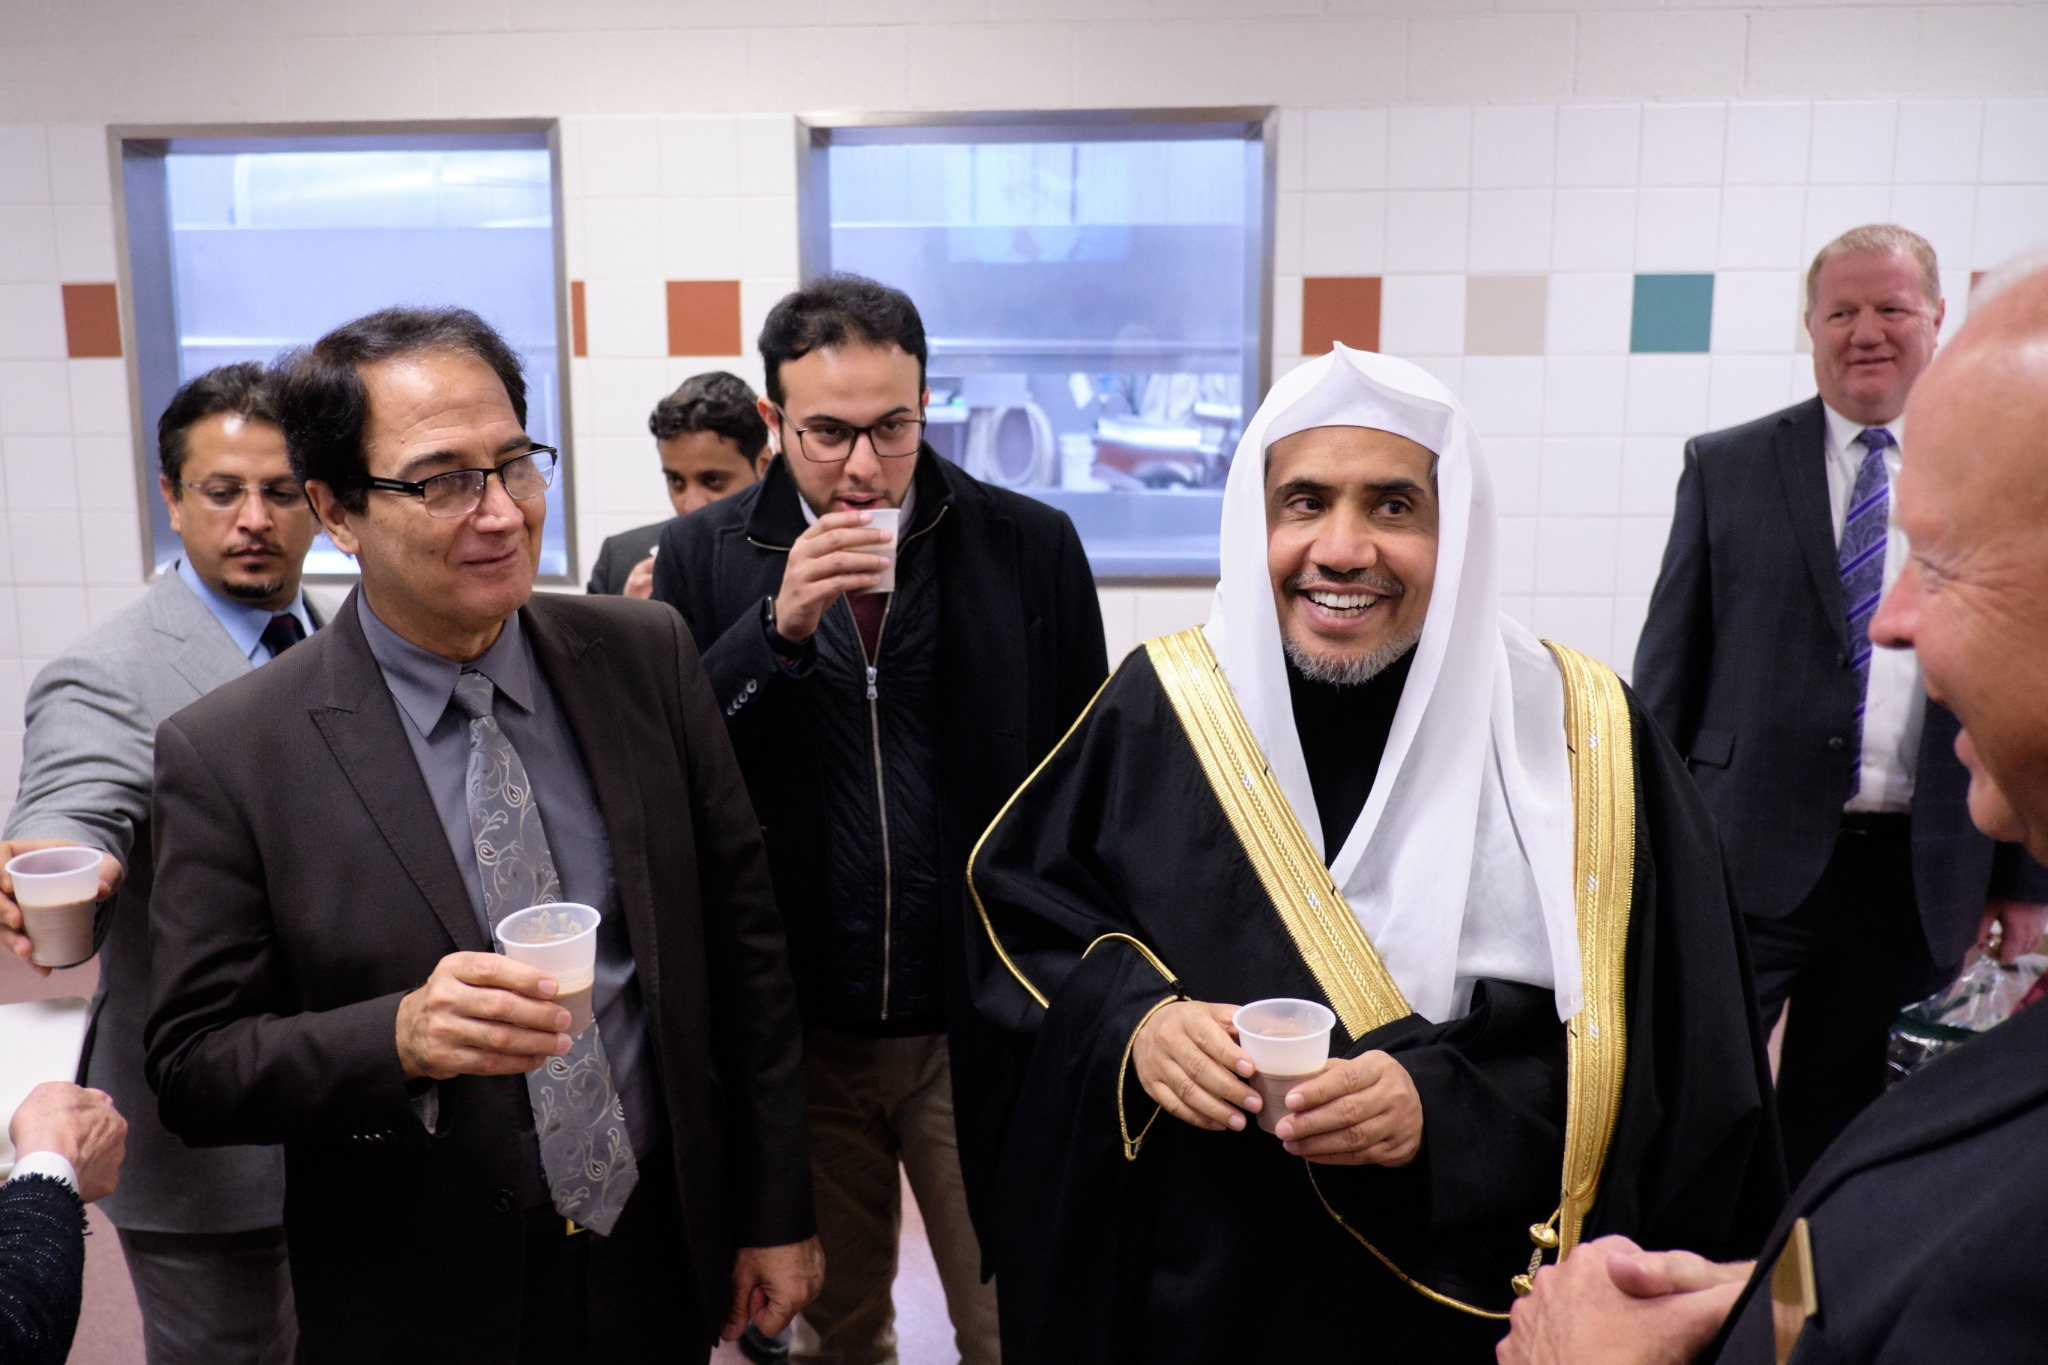 His Excellency Dr. Mohammad Al-Issa, secretary-general of the Muslim World League, tastes chocolate milk made on Welfare Square during a visit there on Nov. 5, 2019.